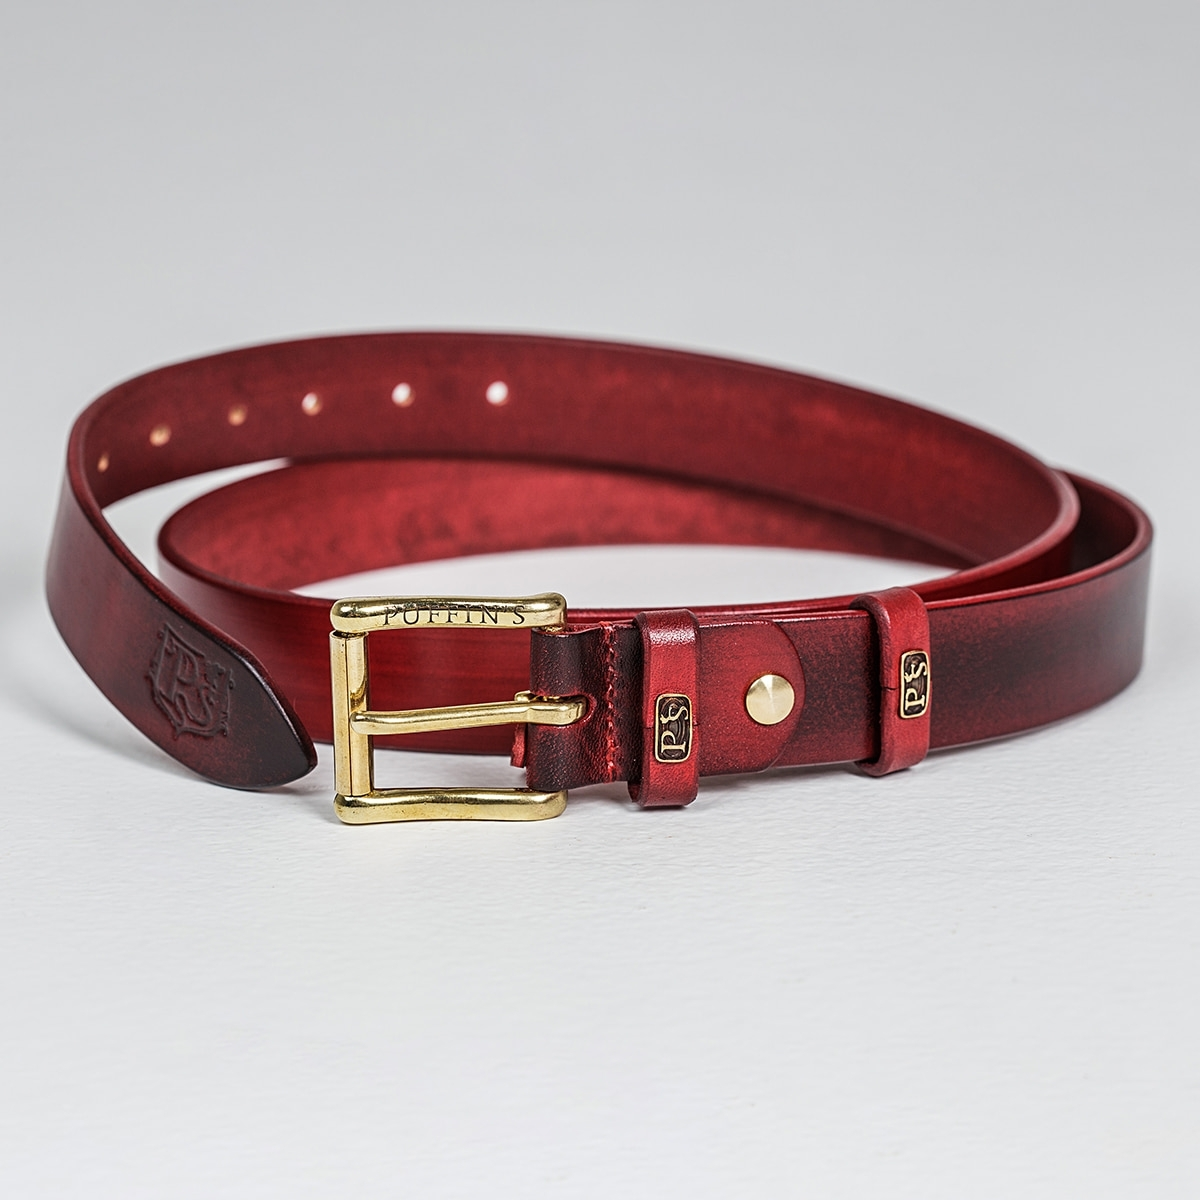 32mm traditional belt for jeans red currant